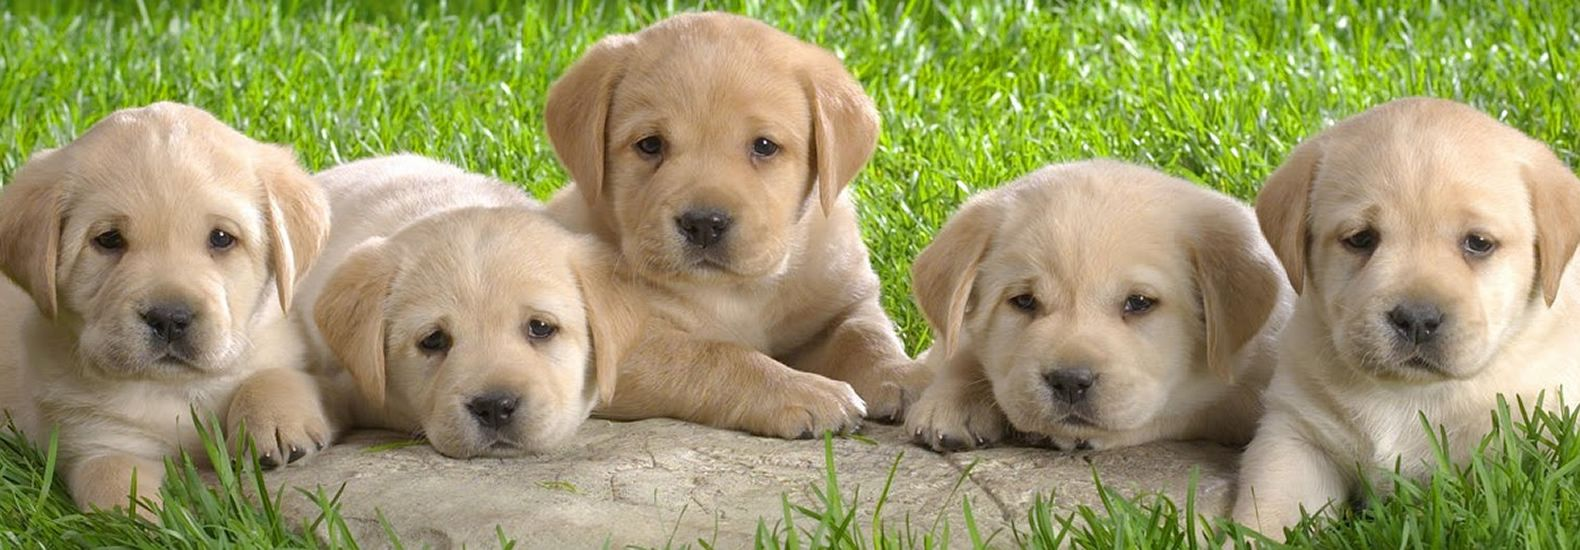 About Our Company Petland Columbus Pet Store Ohio Puppies Labrador Retriever Puppies Cute Puppies